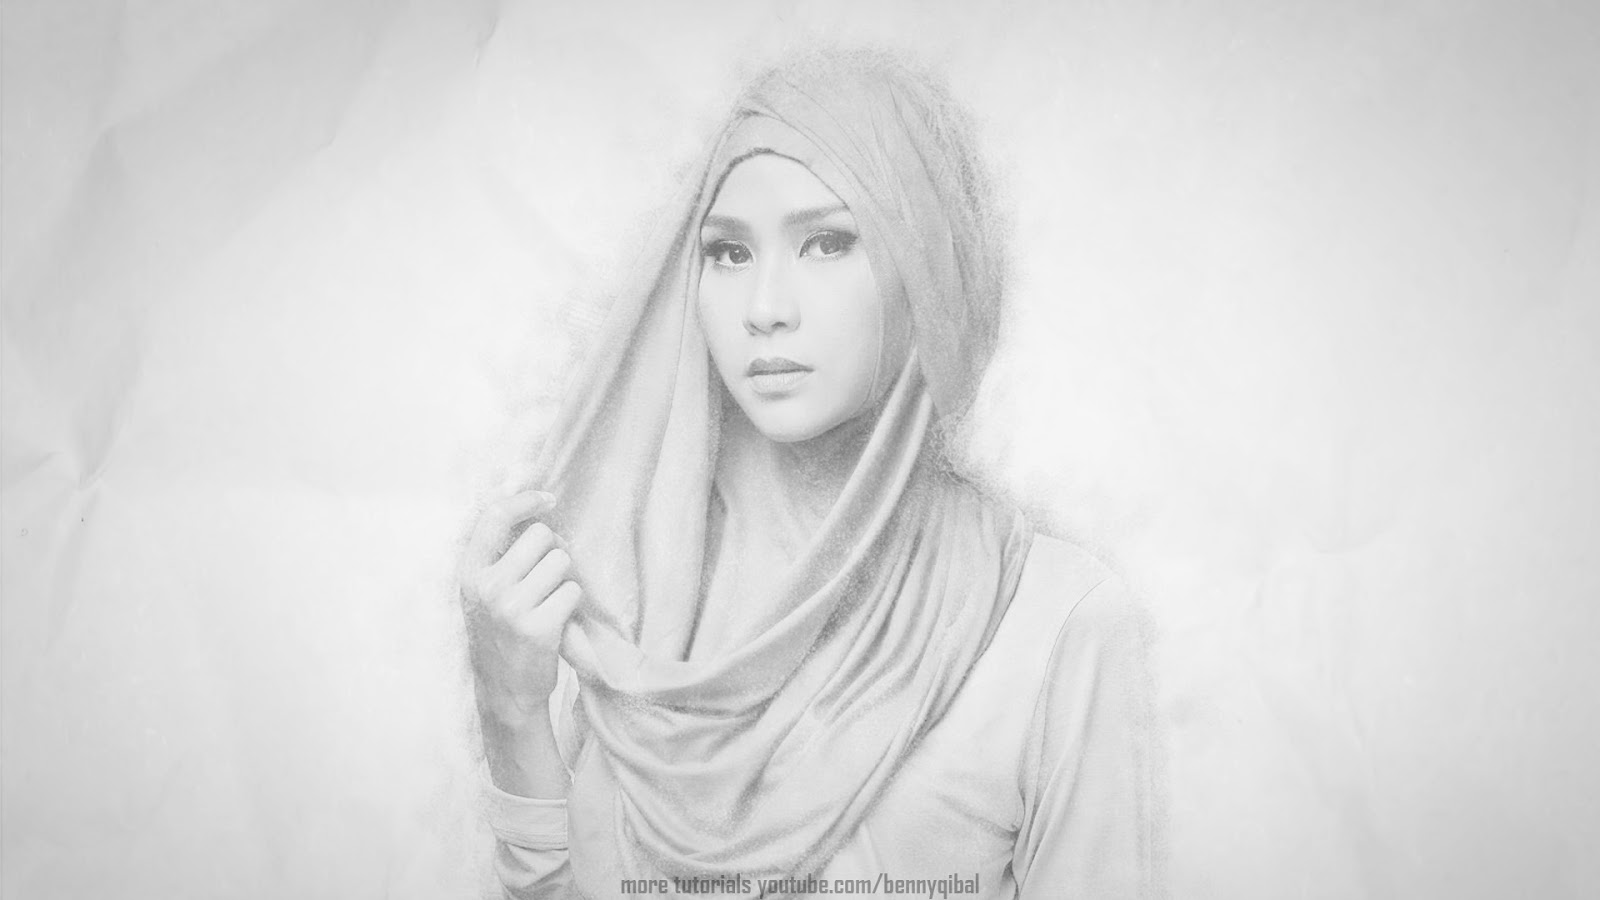 Photoshop pencil sketch effect tutorial